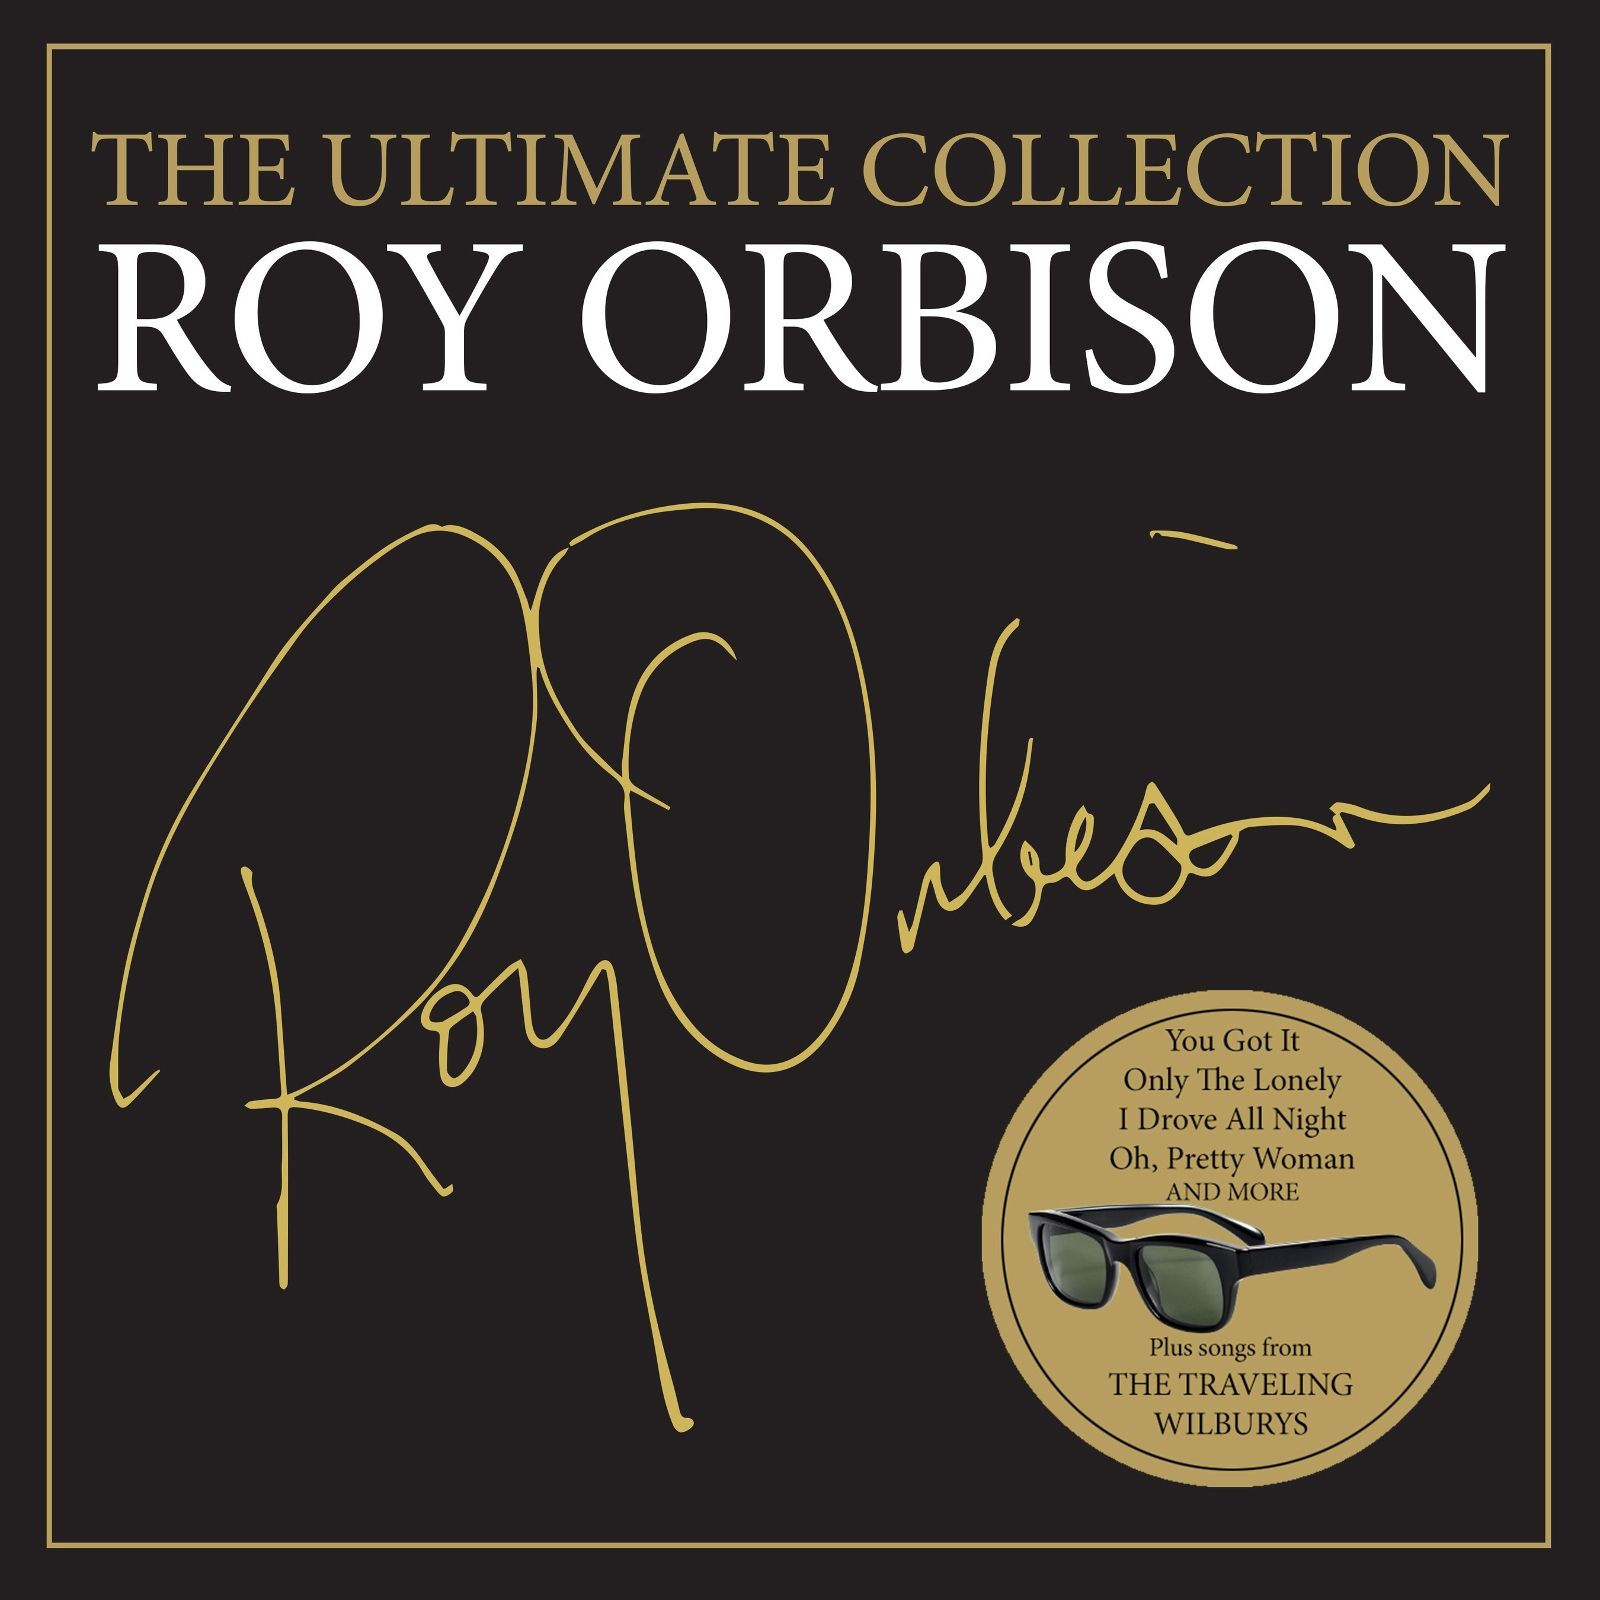 Roy Orbison - The Ultimate Collection album cover